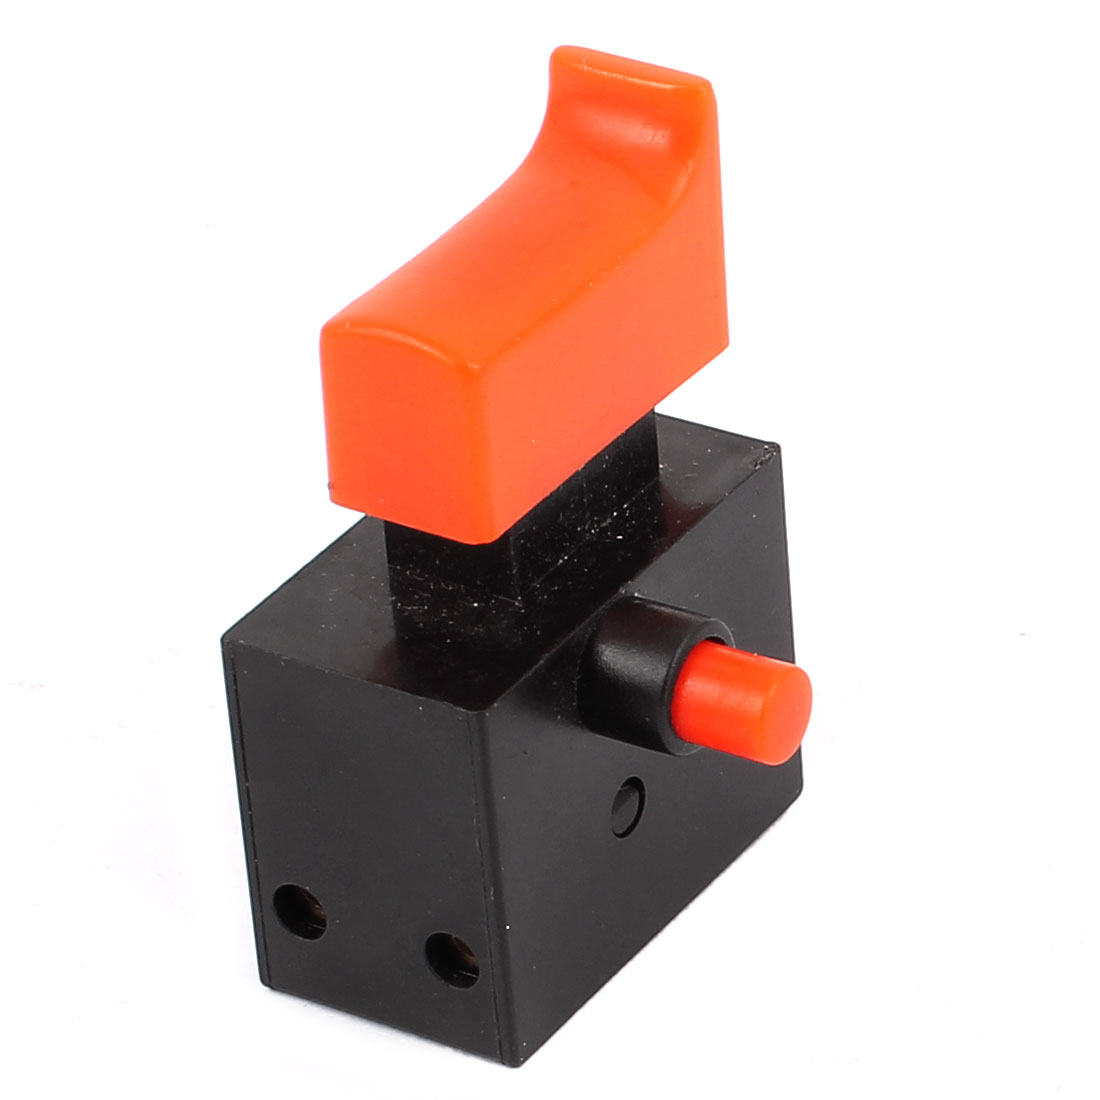 FA2-5/2B AC 250V 5A DPST Latching Cordless Drill Switch Black Orange